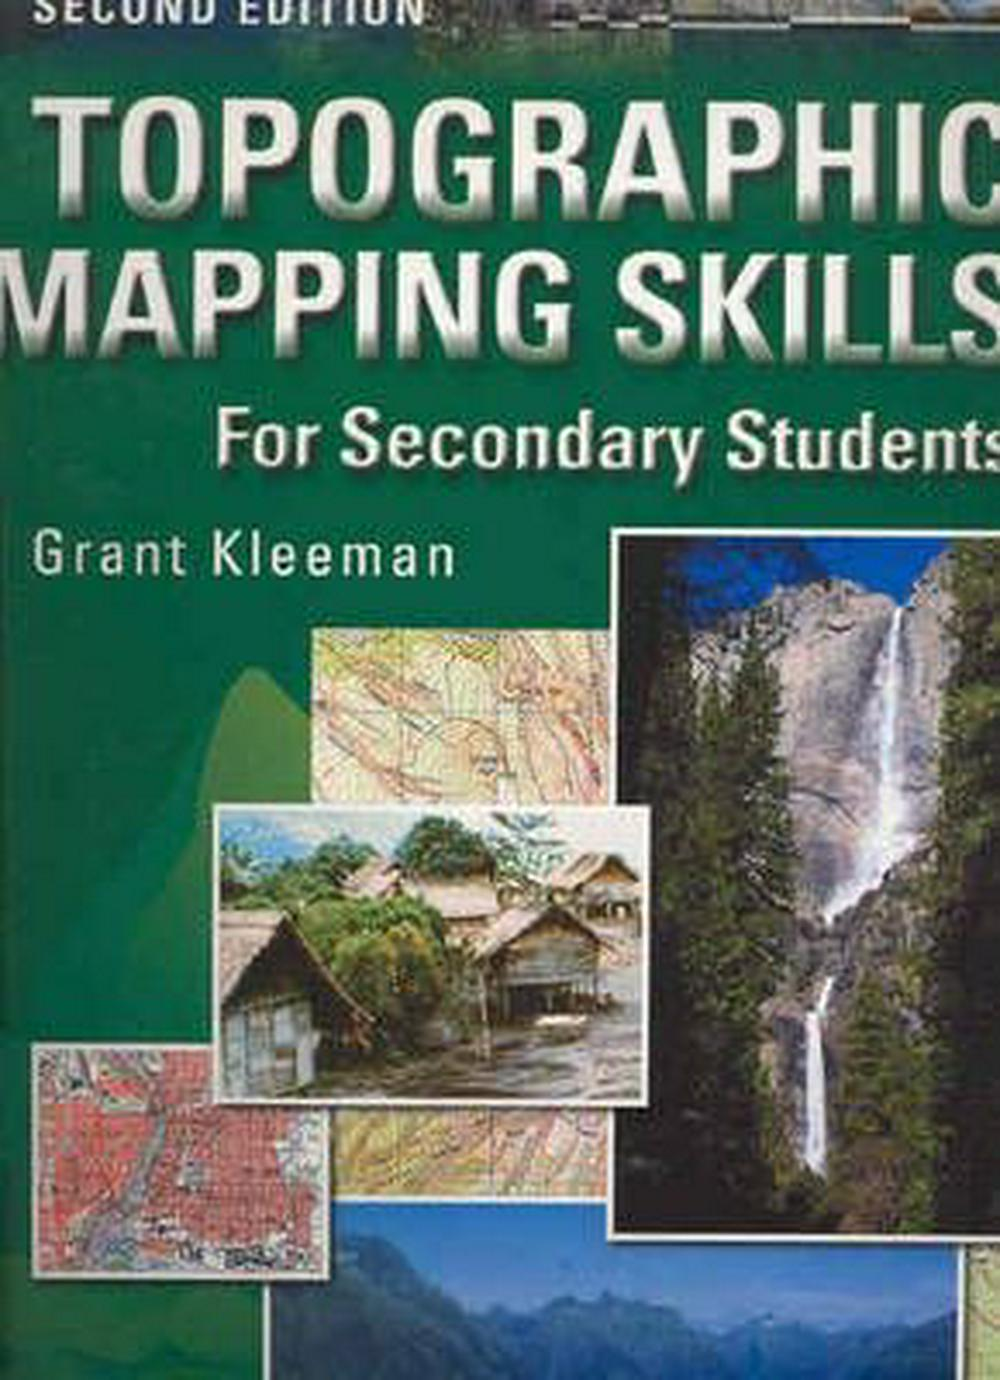 Topographic Mapping Skills for Secondary Students